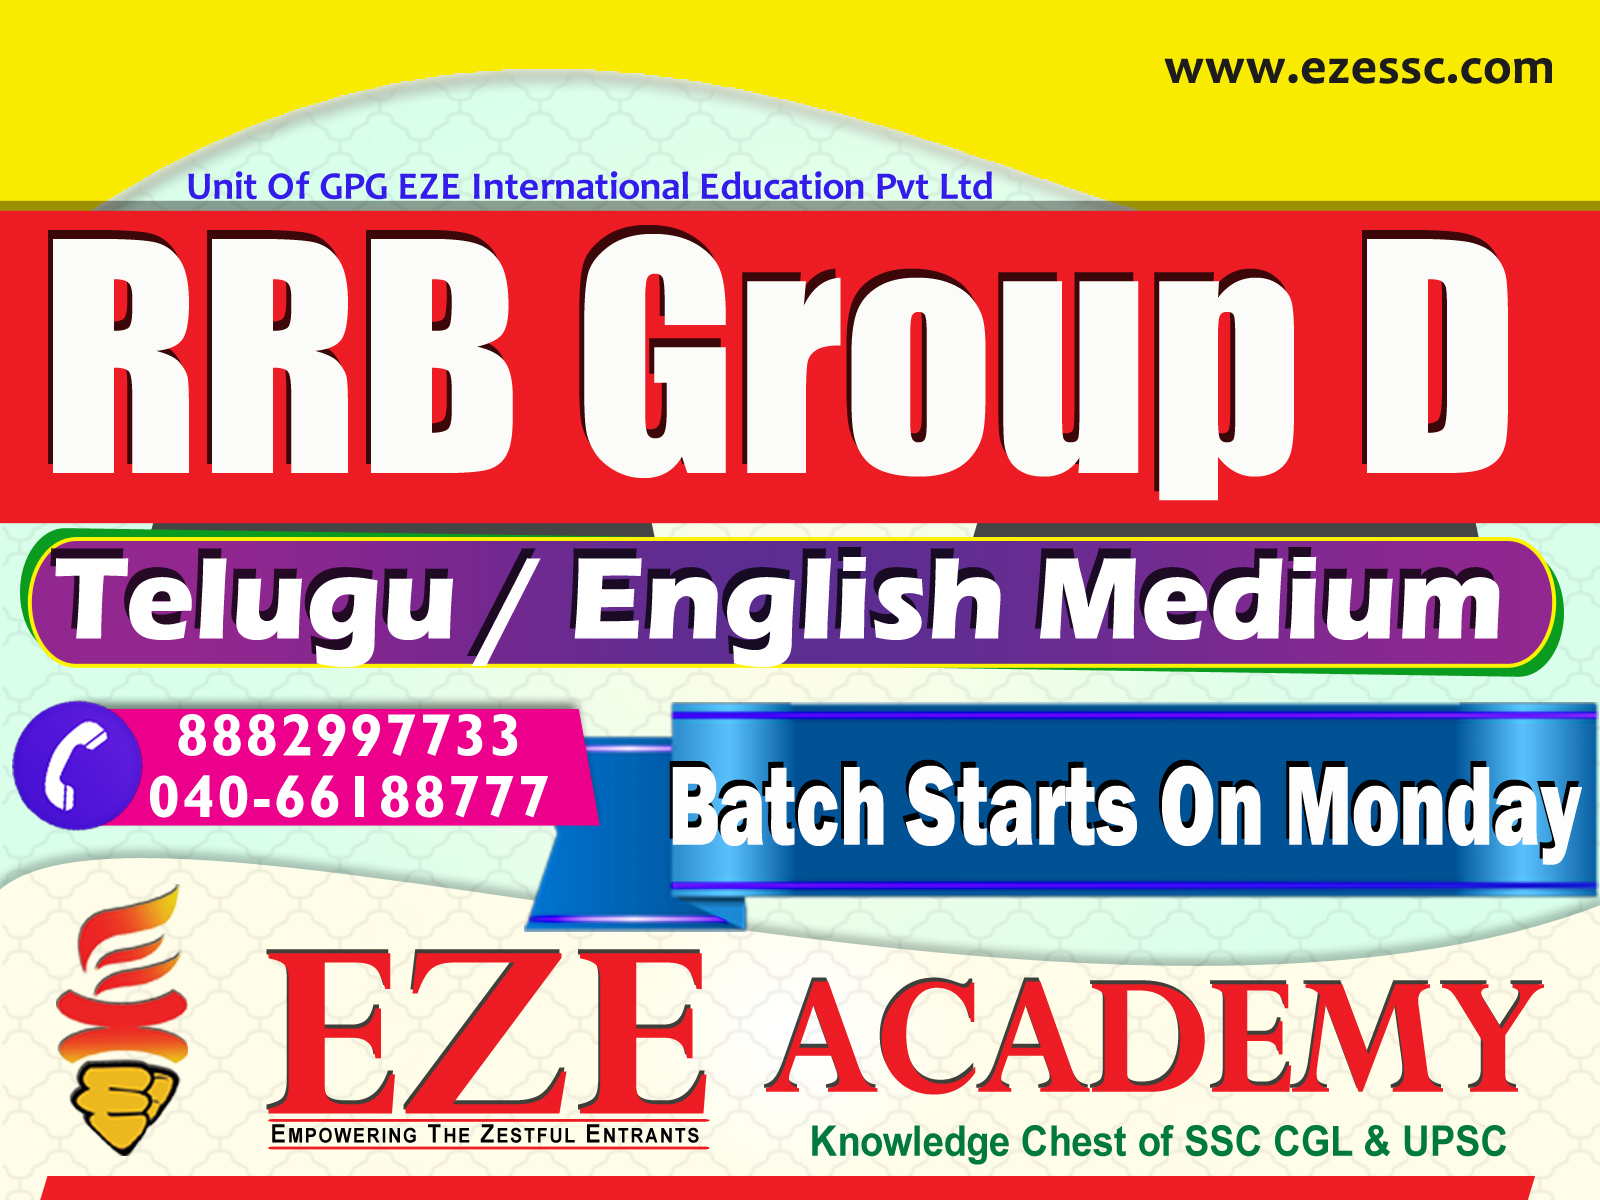 rrb group d coaching centers in hyderabad and secunderabad